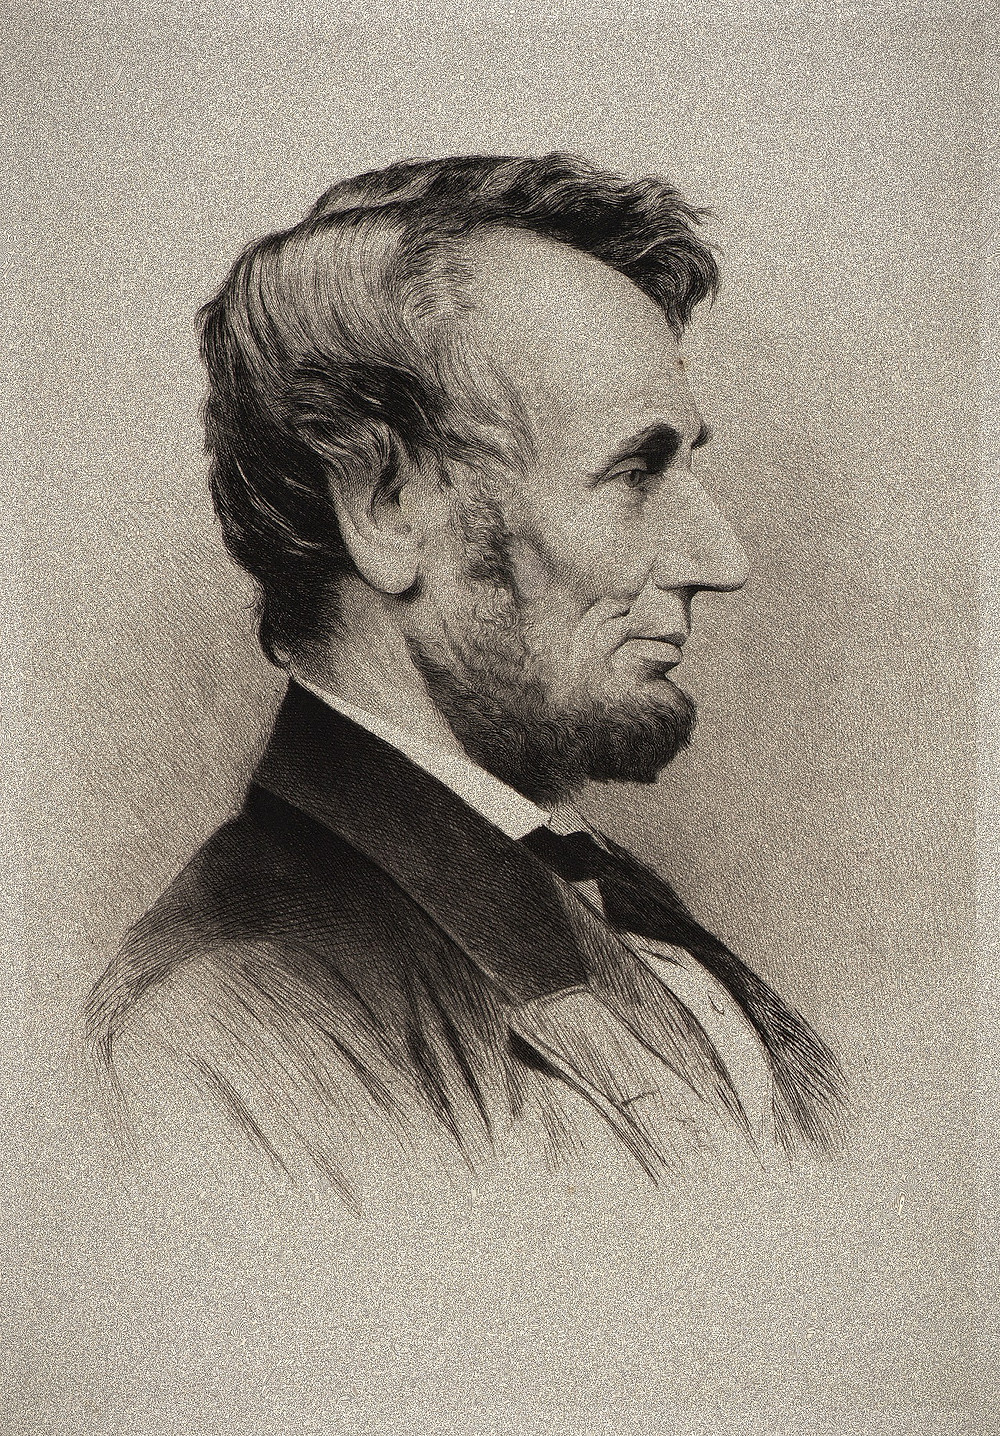 Thomas Johnson, Abraham Lincoln, after 1864, etching, Smithsonian American Art Museum, Gift of Olin Dows, 1979.136.92